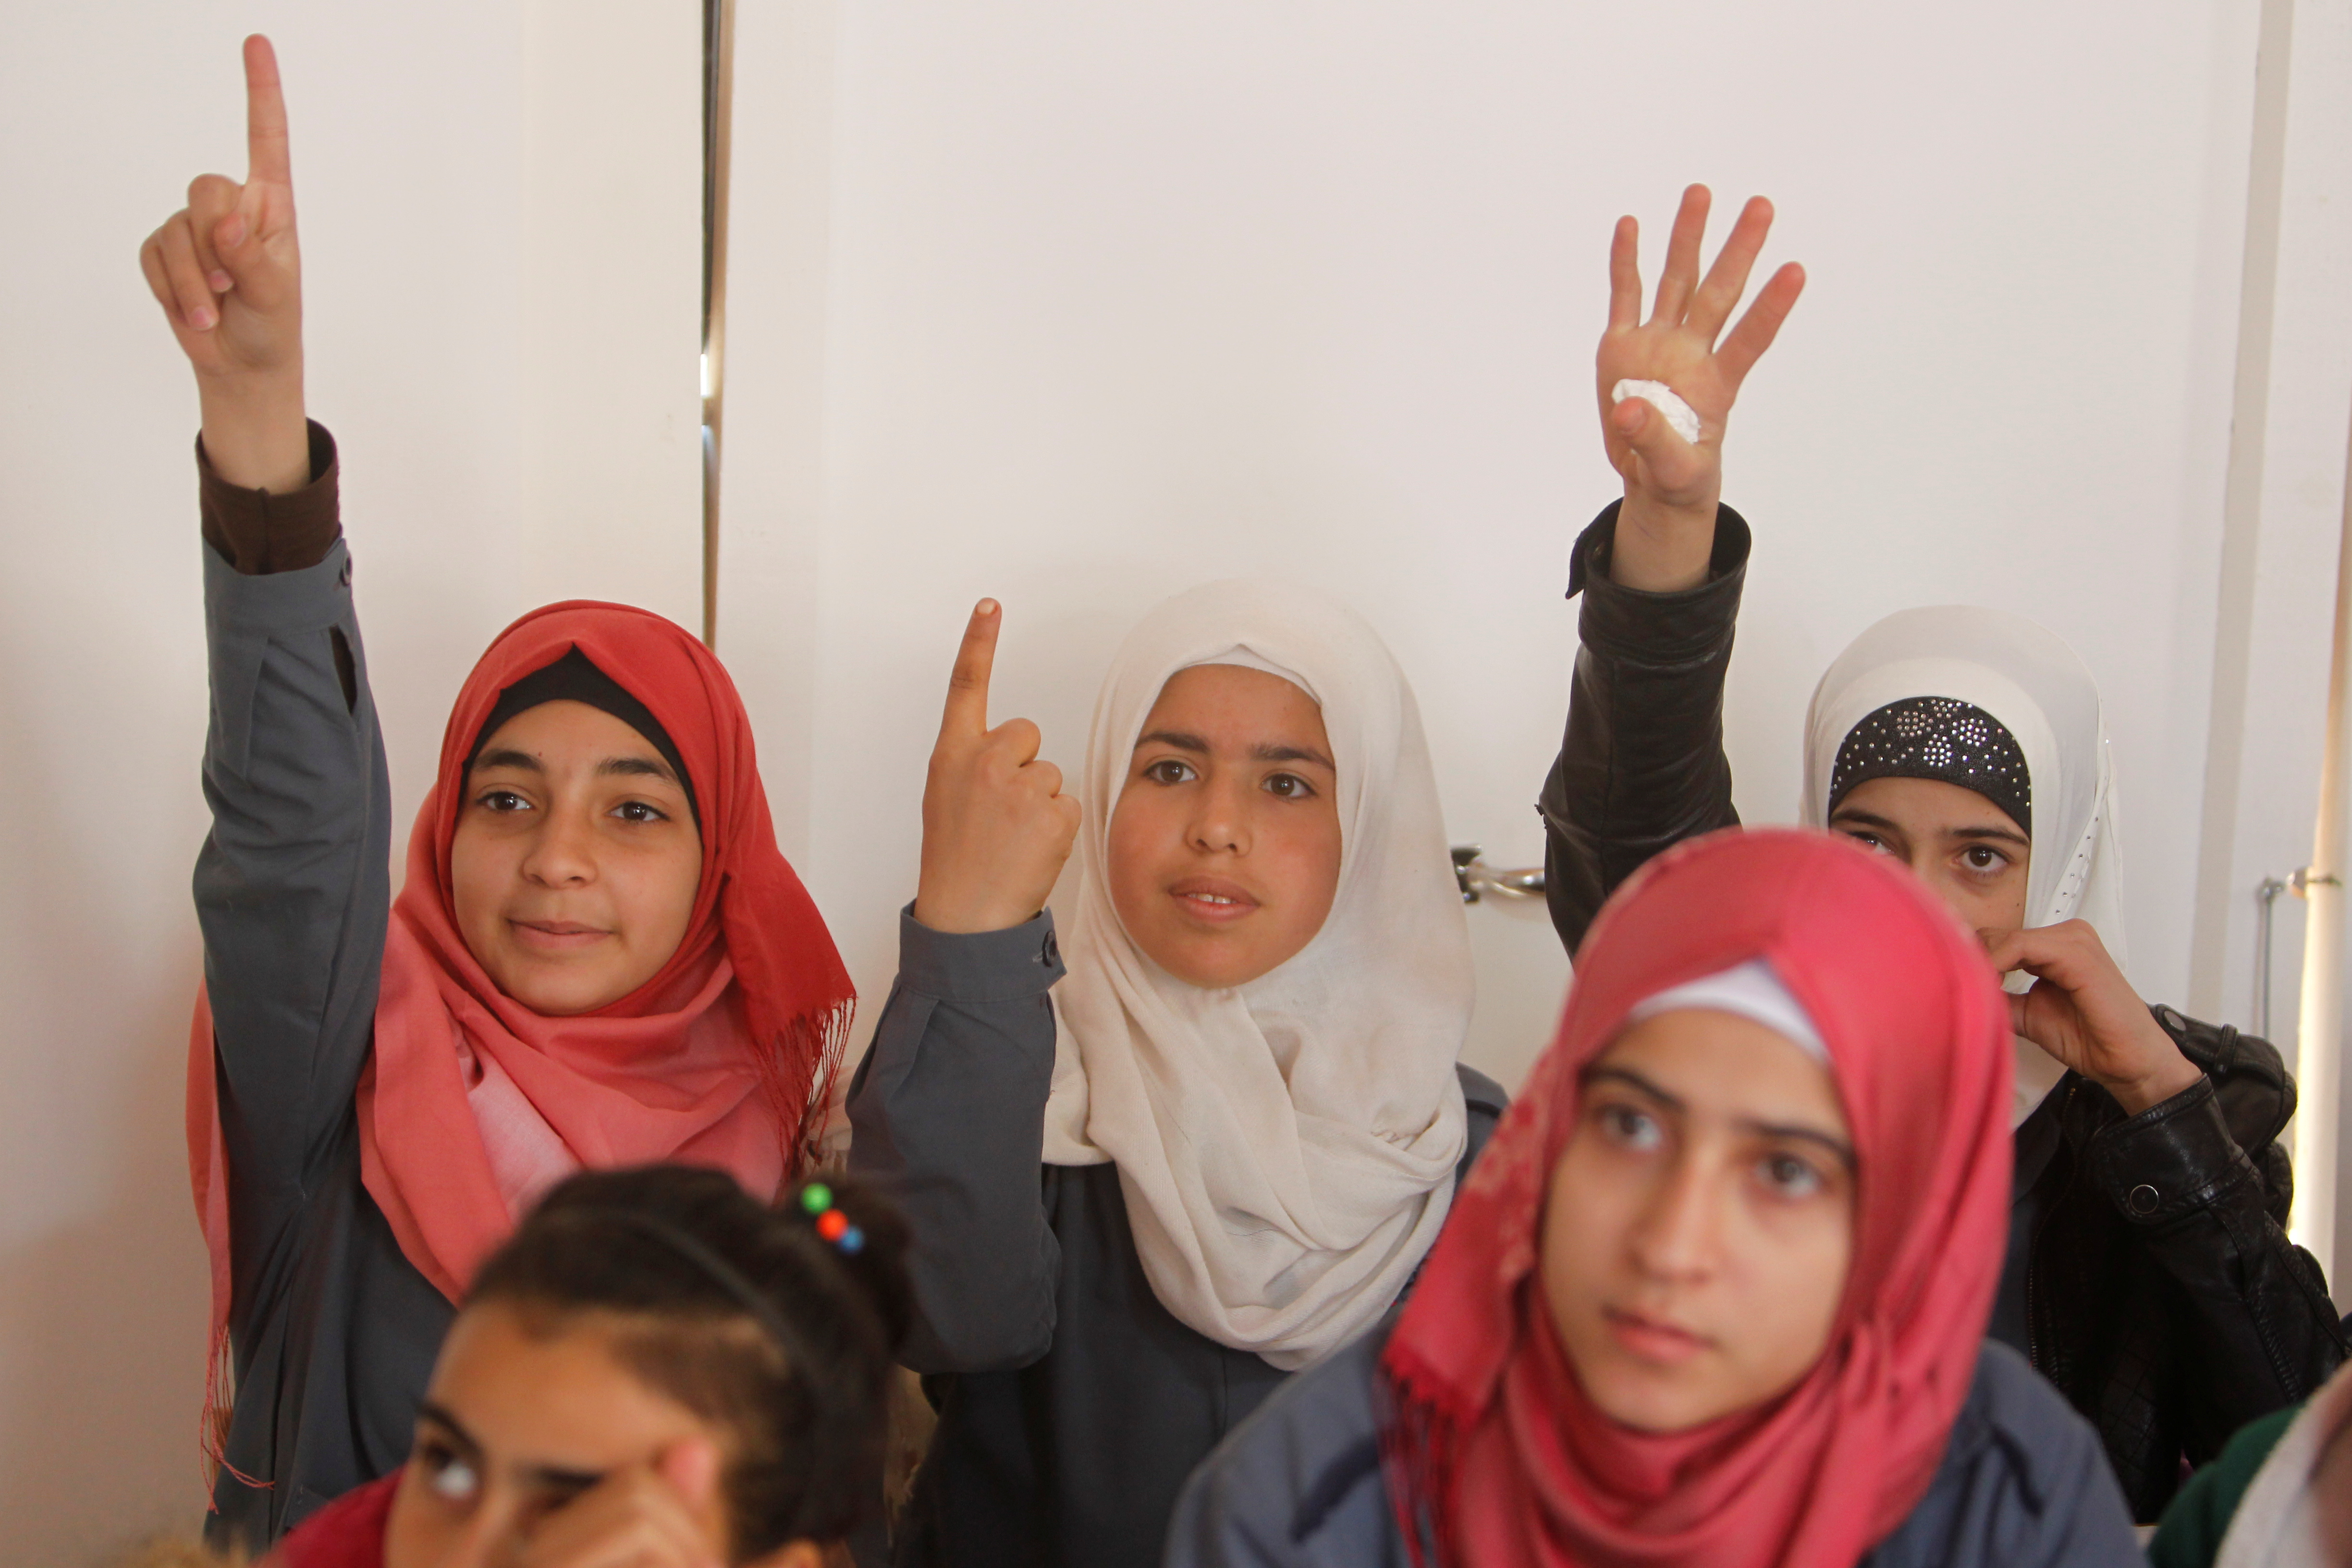 Syrian refugee girls gesture as they sit inside a classroom at a school for Syrian refugee girls in Lebanon, October 19, 2017.